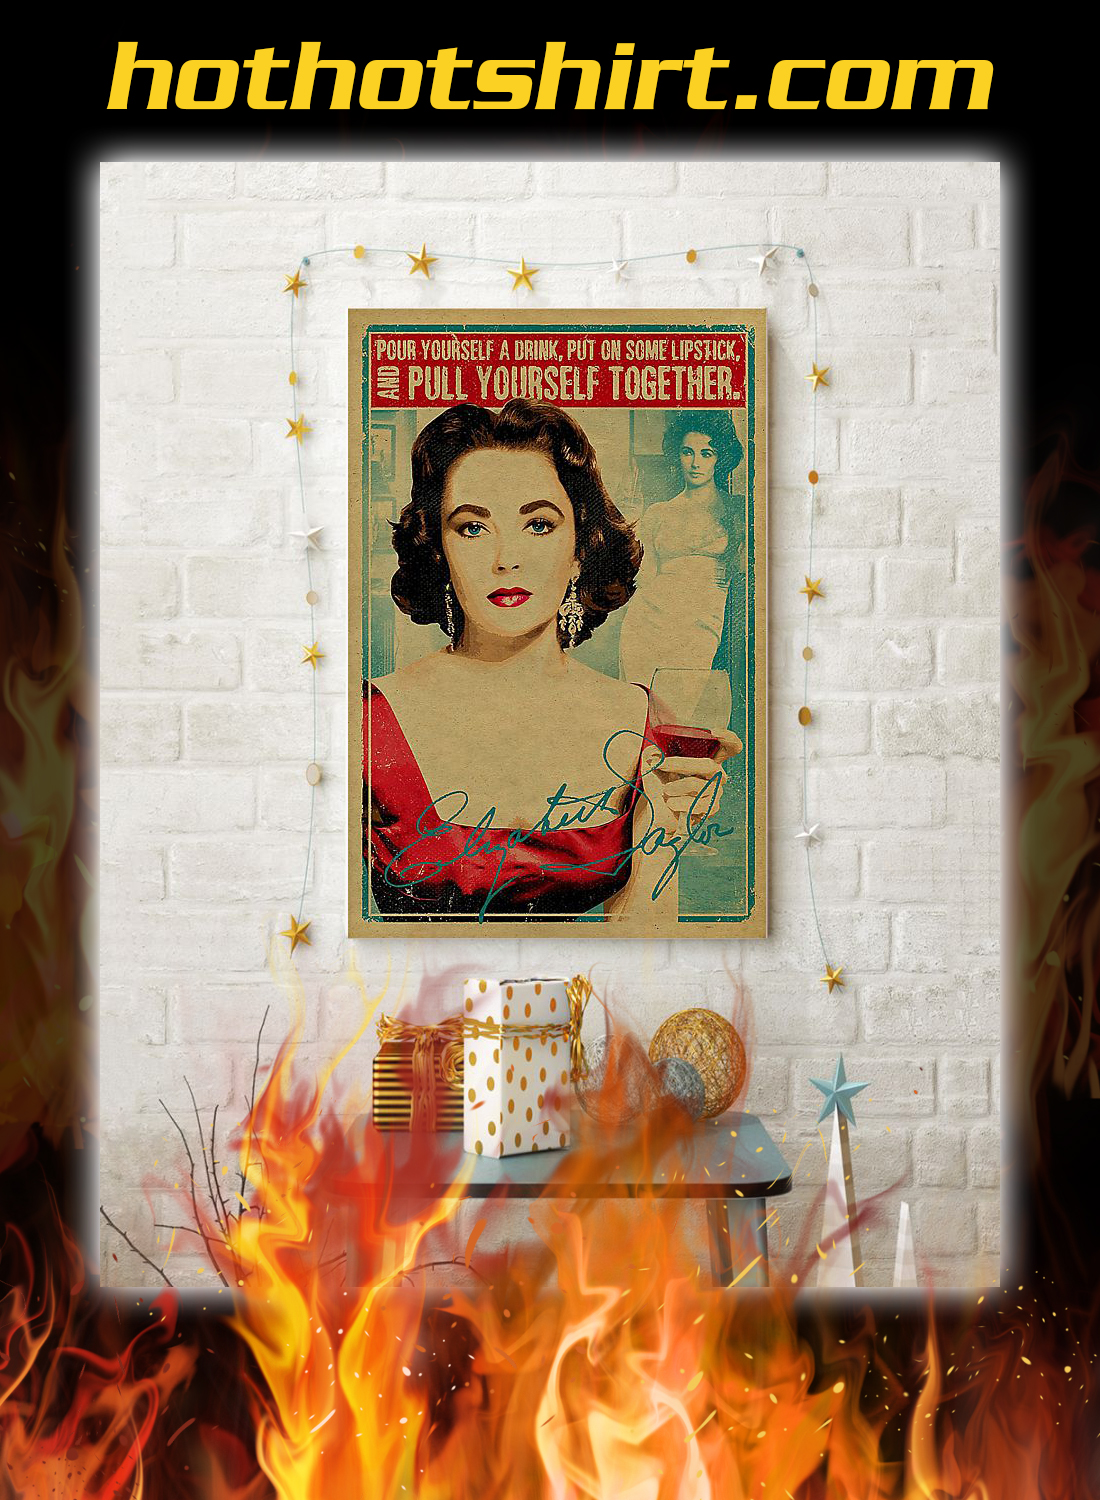 Elizabeth taylor pour yourself a drink put on some lipstick poster 2